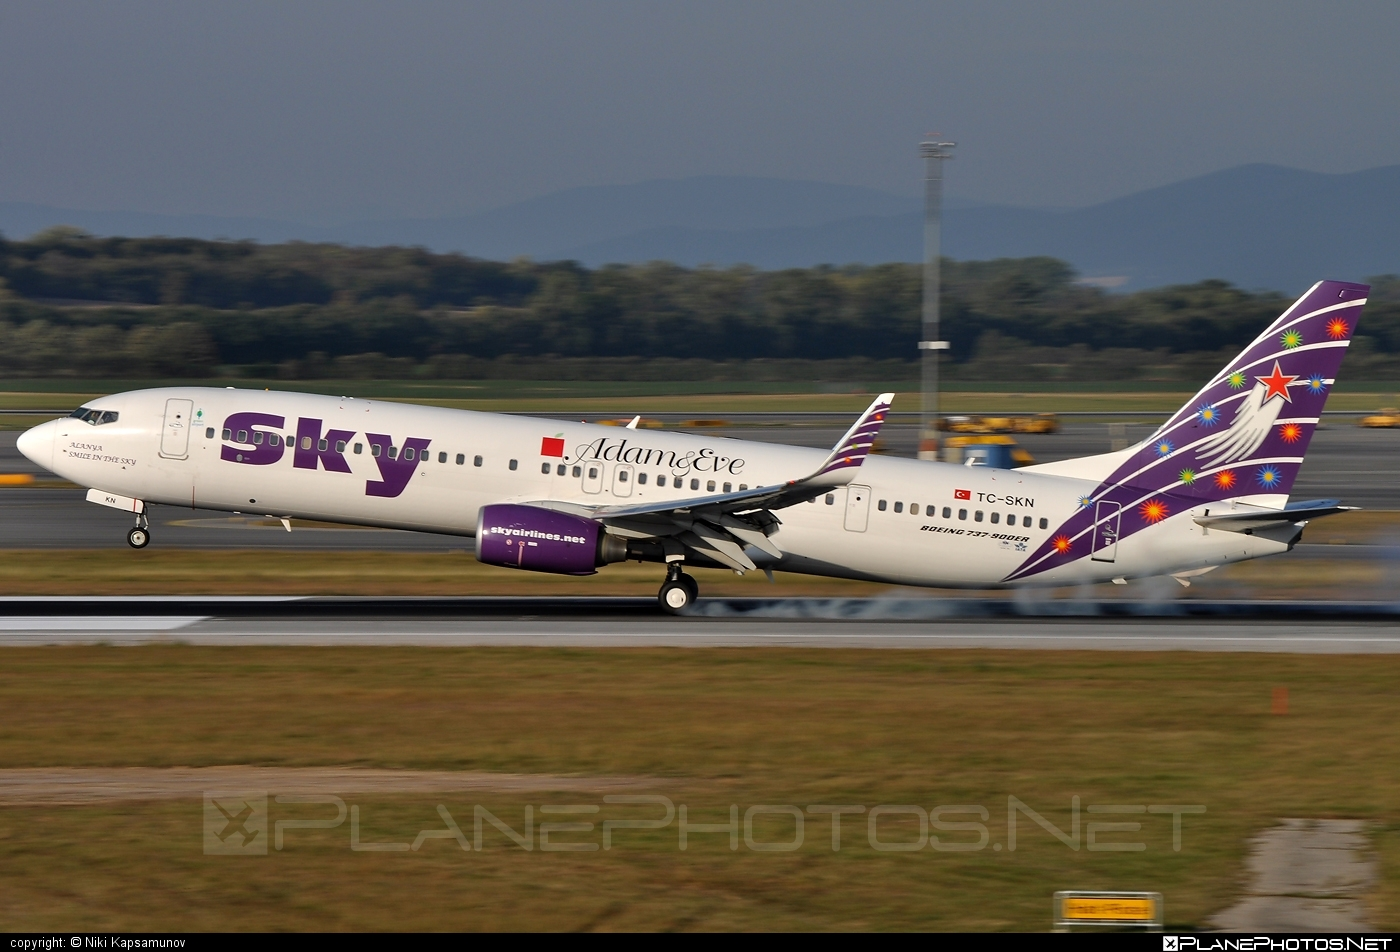 Boeing 737-900ER - TC-SKN operated by Sky Airlines #b737 #b737er #b737nextgen #b737ng #boeing #boeing737 #touchdown